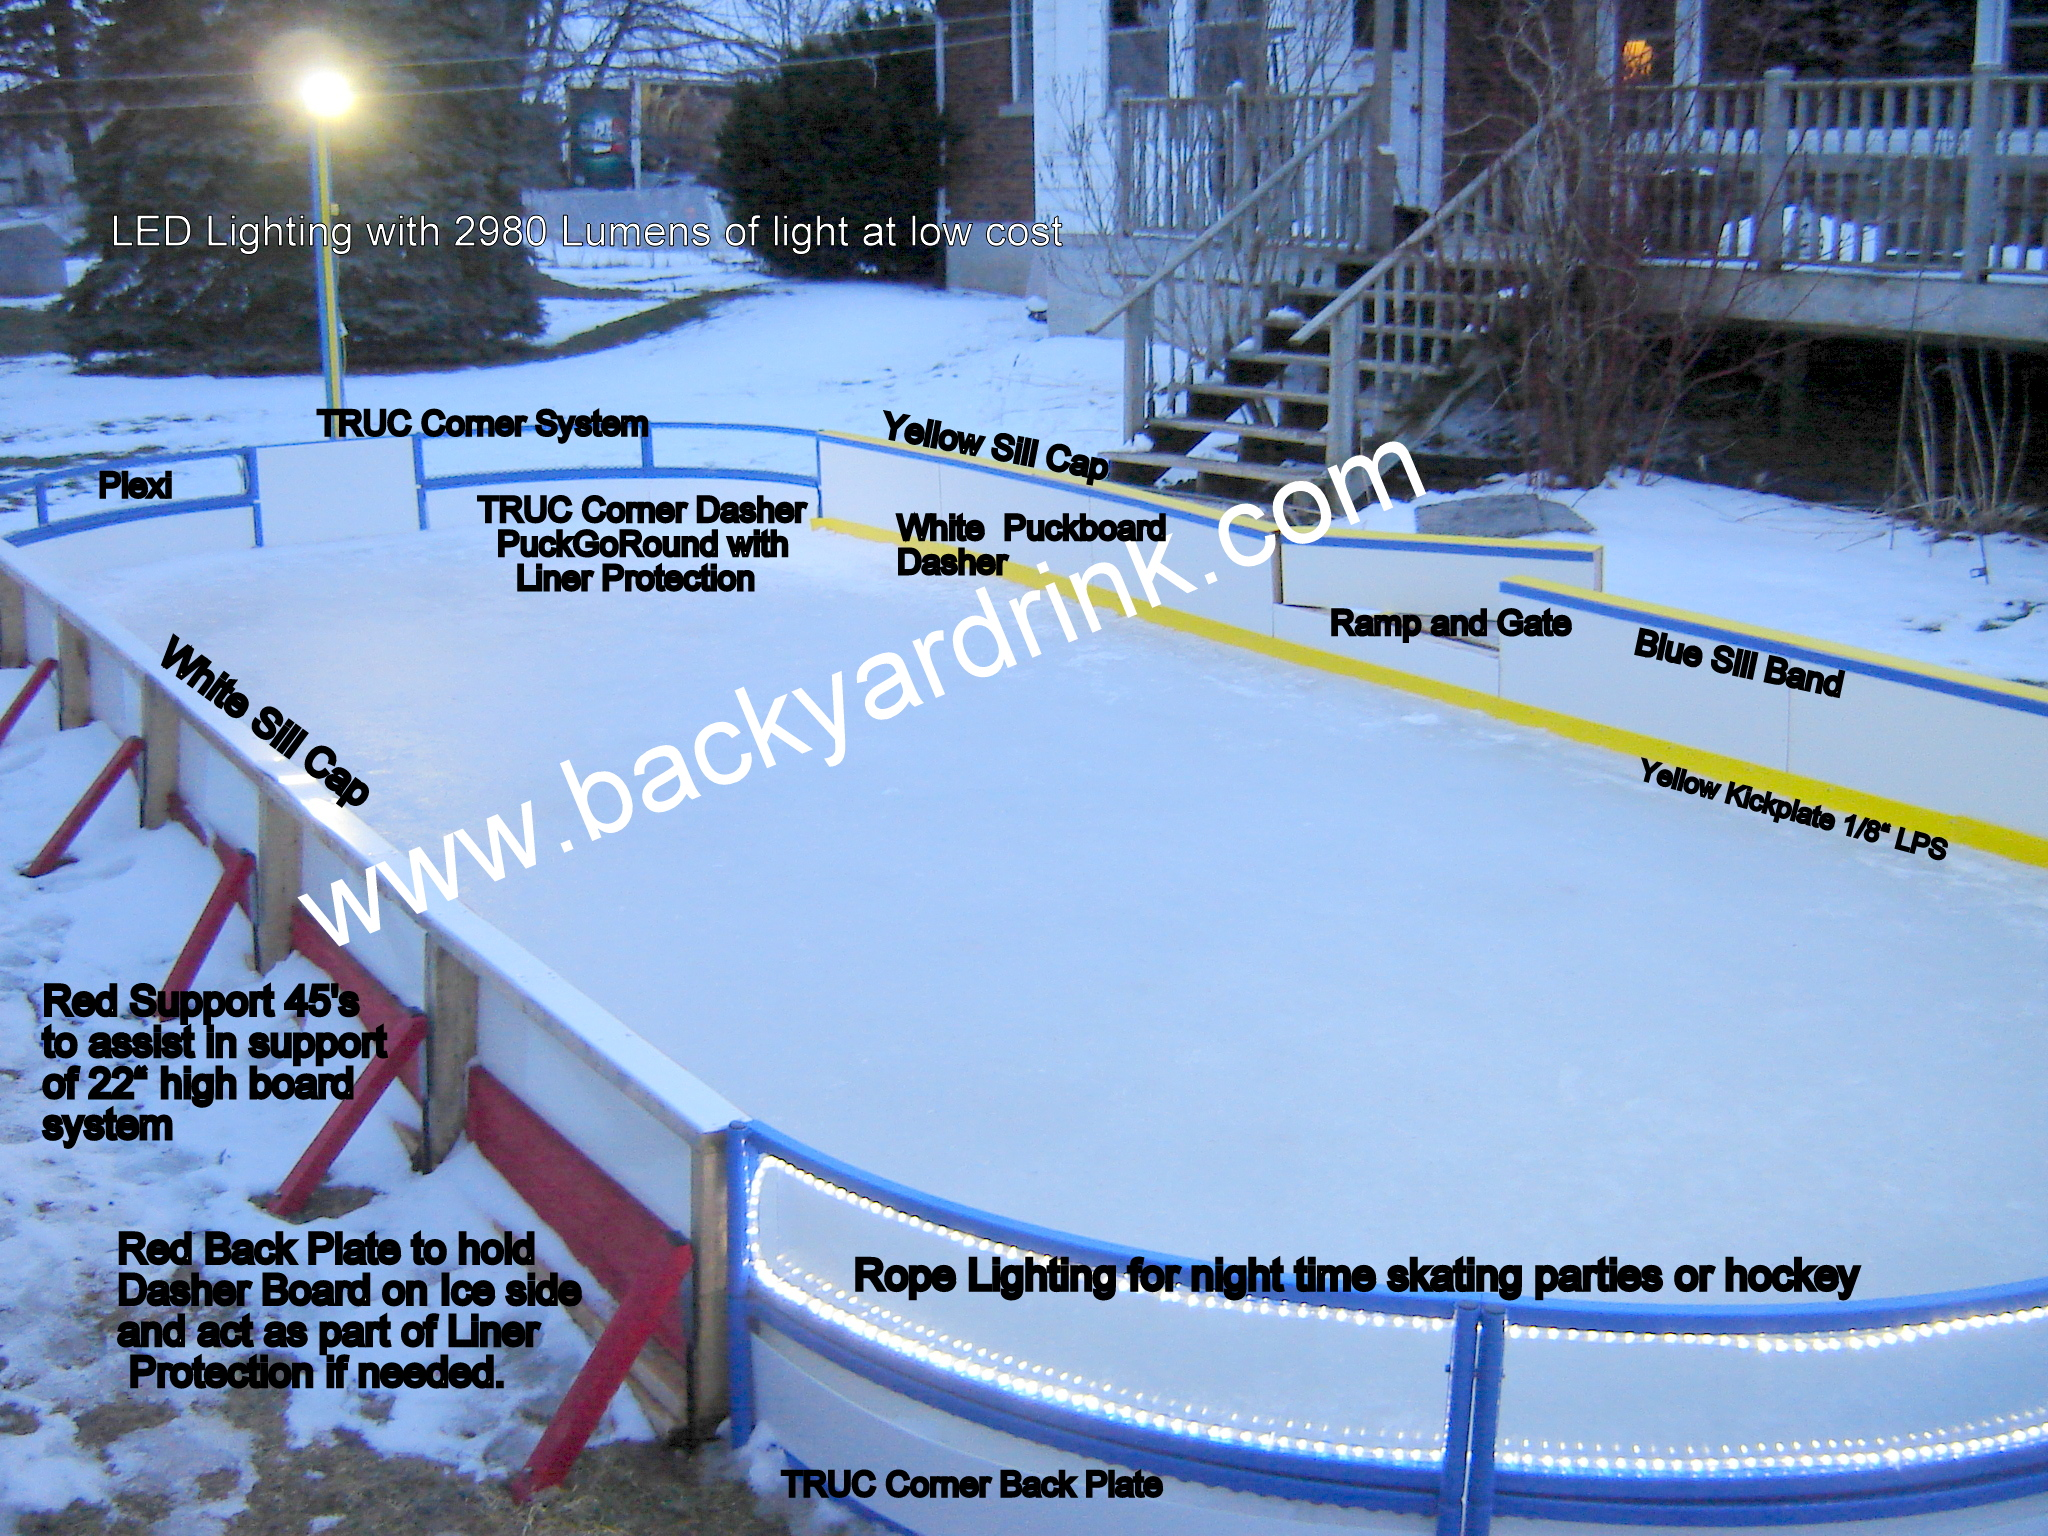 Hockey Rink Board. Dasher Board, Kick Plate and Top Sill